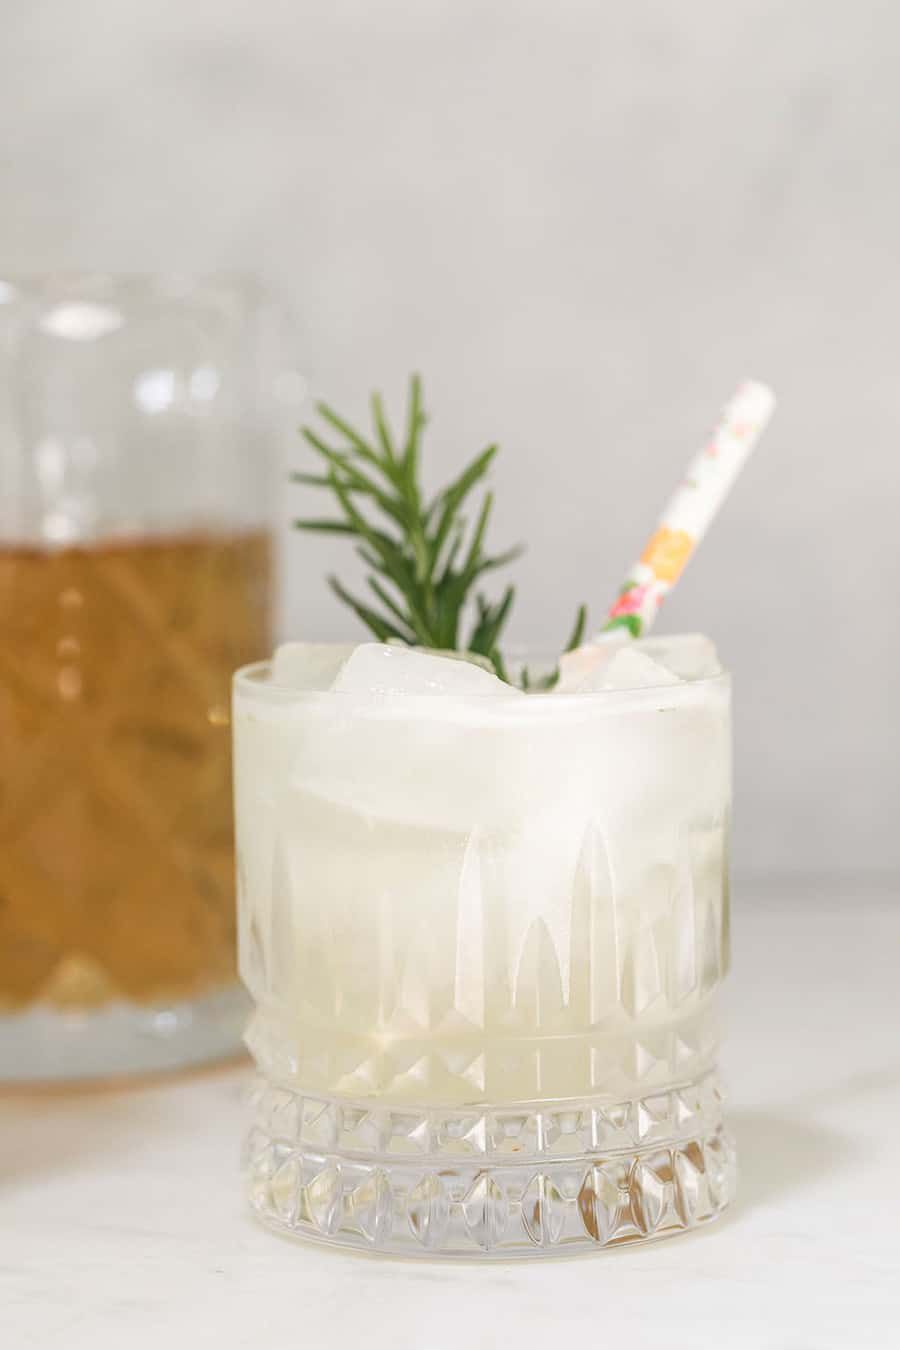 iced drink for summer